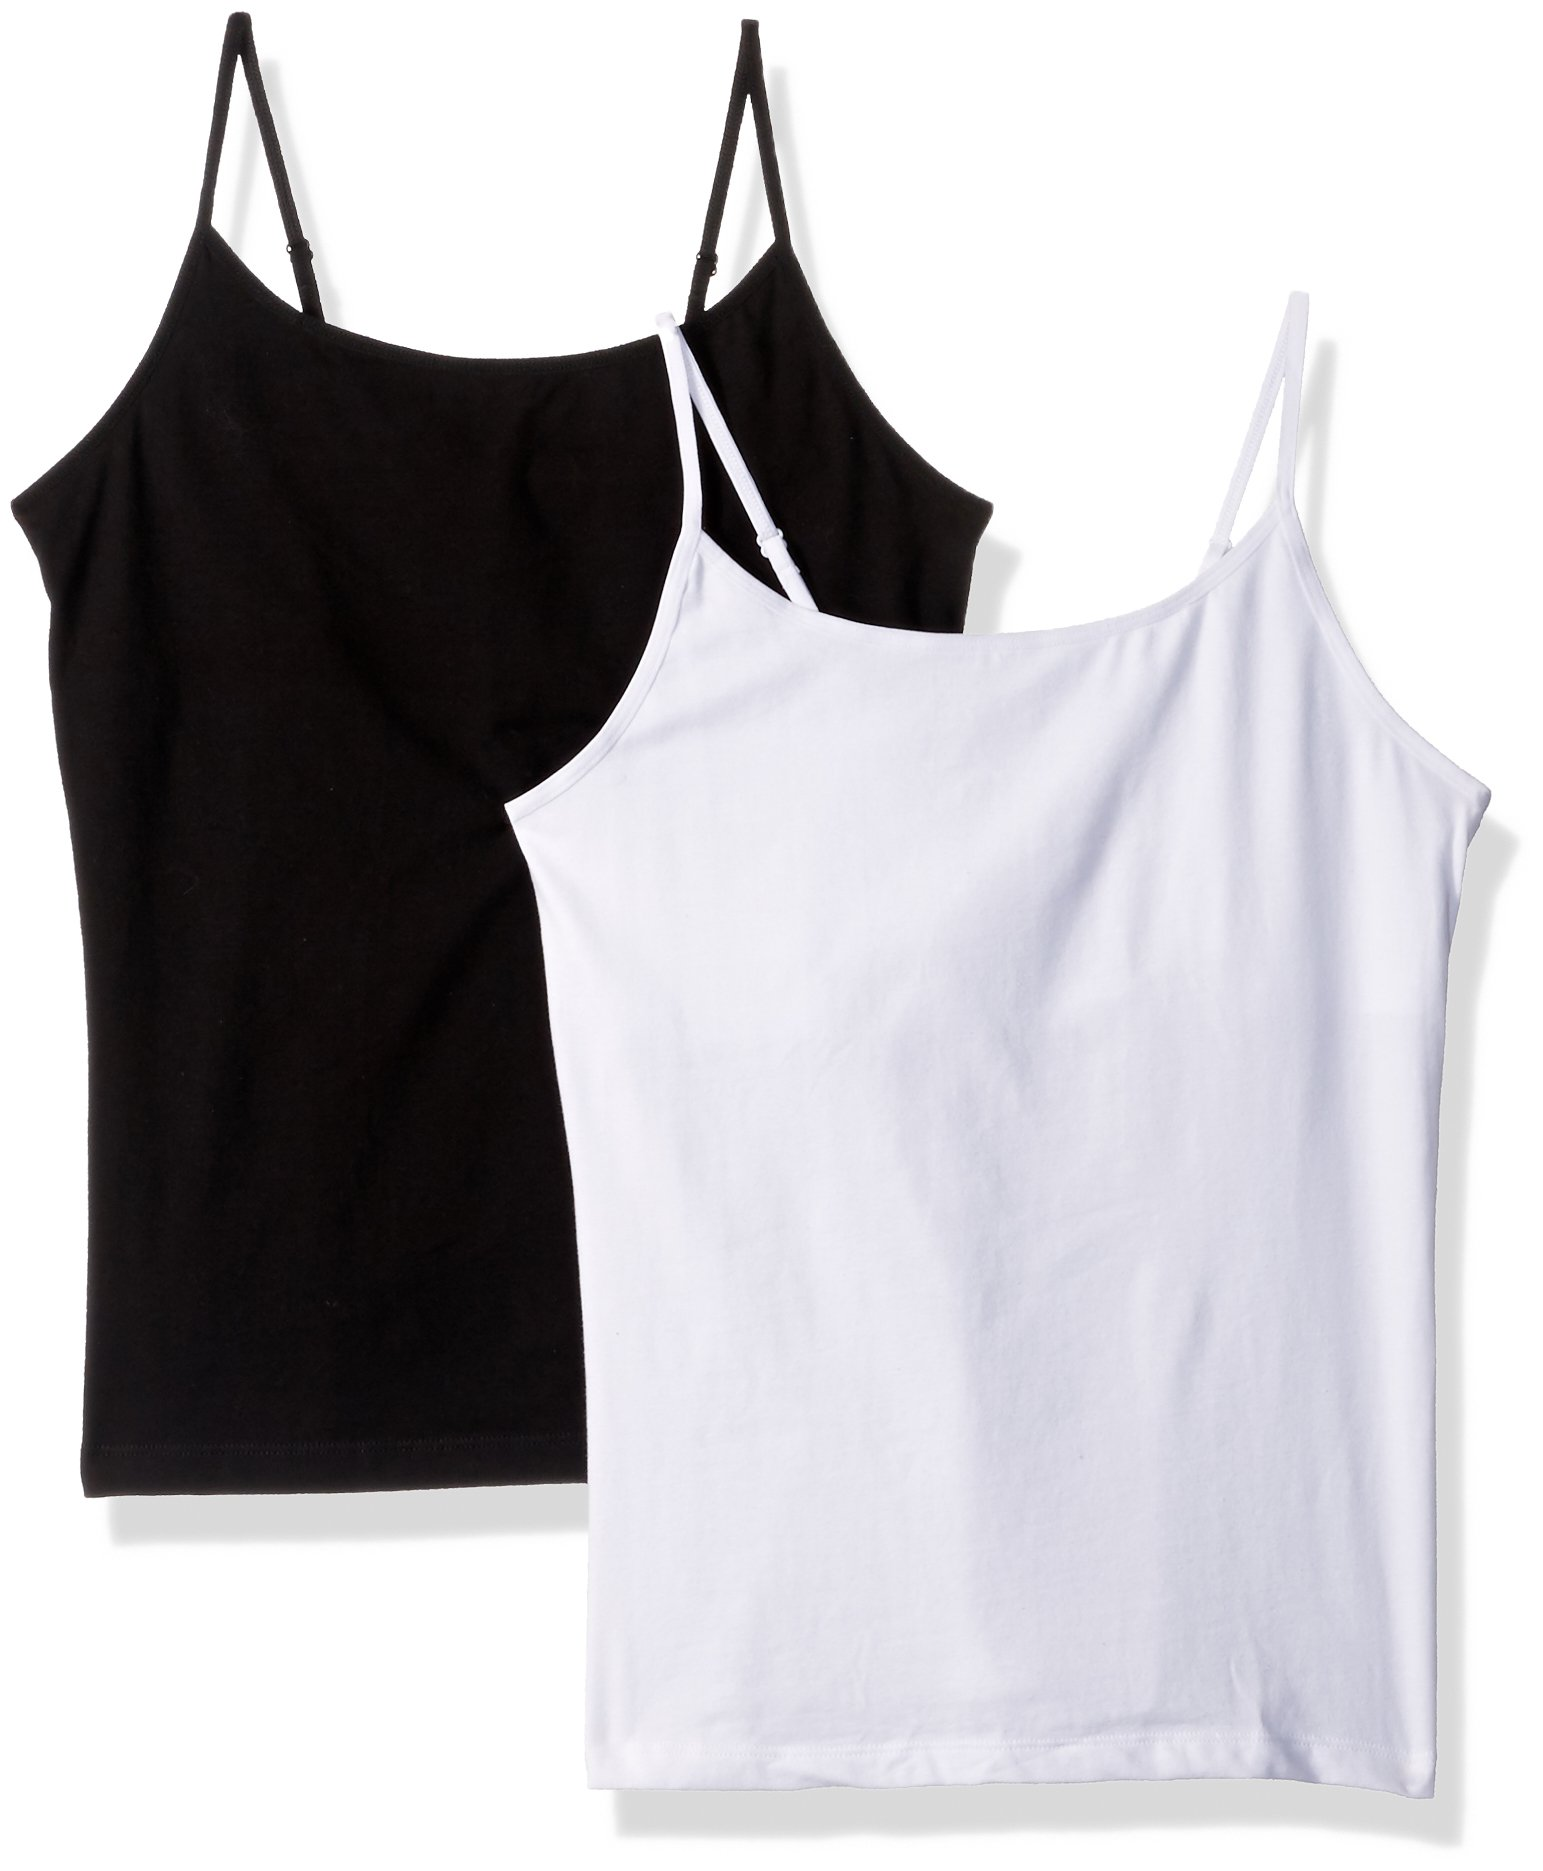 The Children's Place Girls' Toddler Cami, White 83433 (Pack of 2), XXL(16)